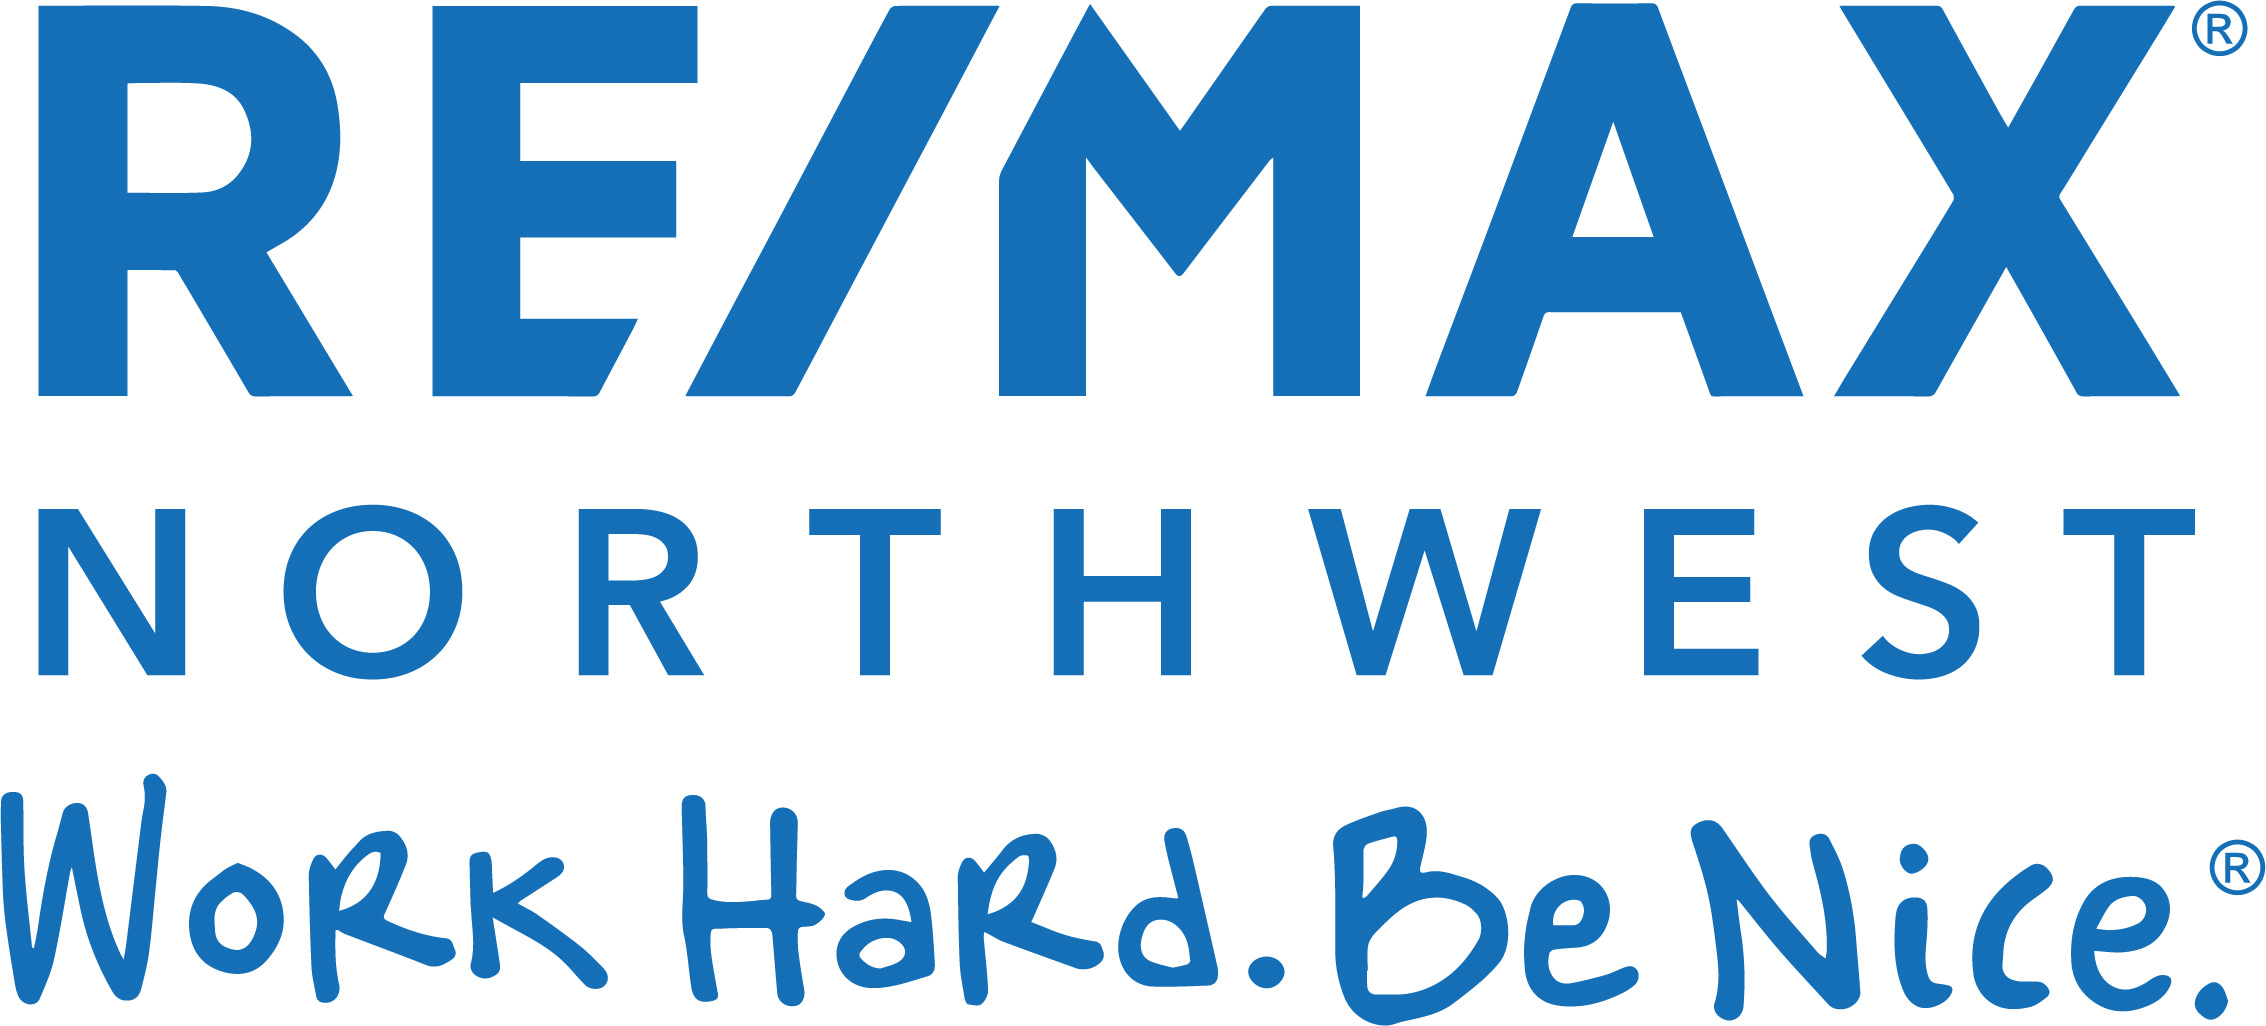 RE/MAX Northwest logo